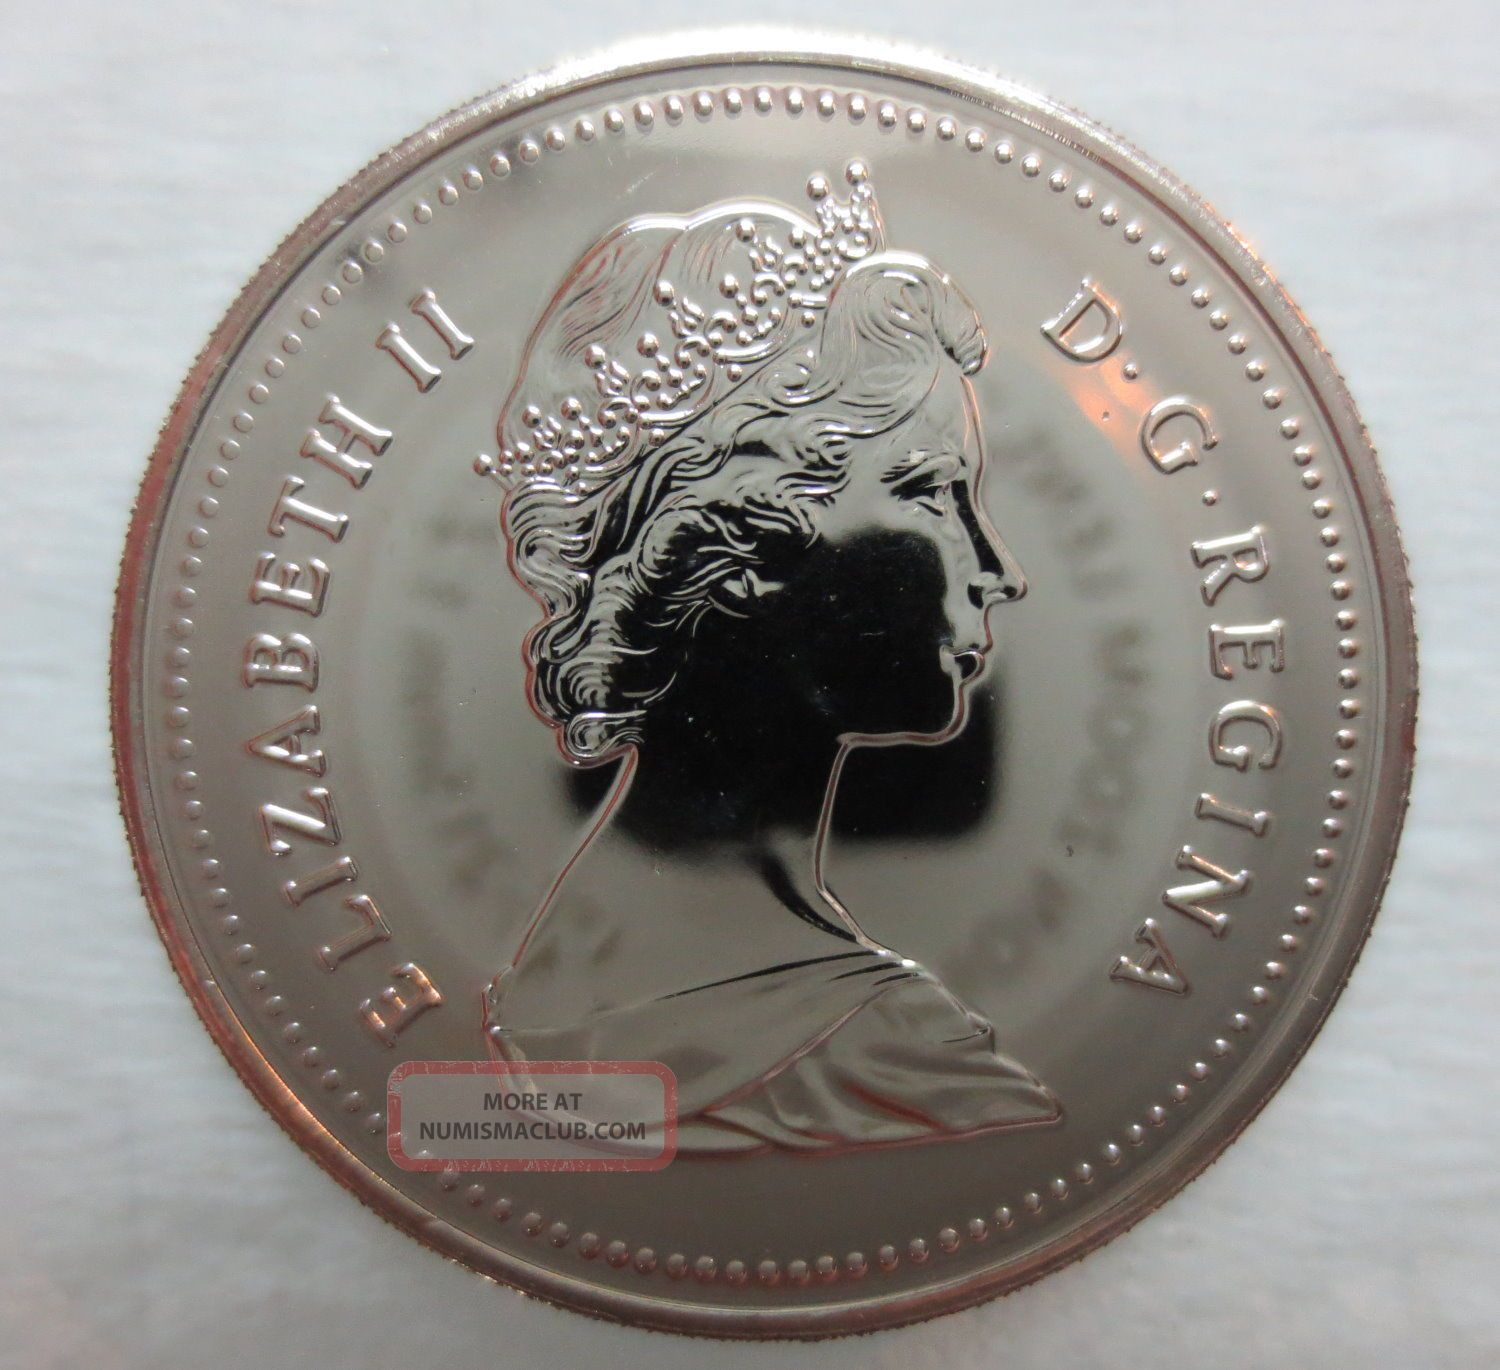 1988 Canada 50 Cents Proof Like Coin